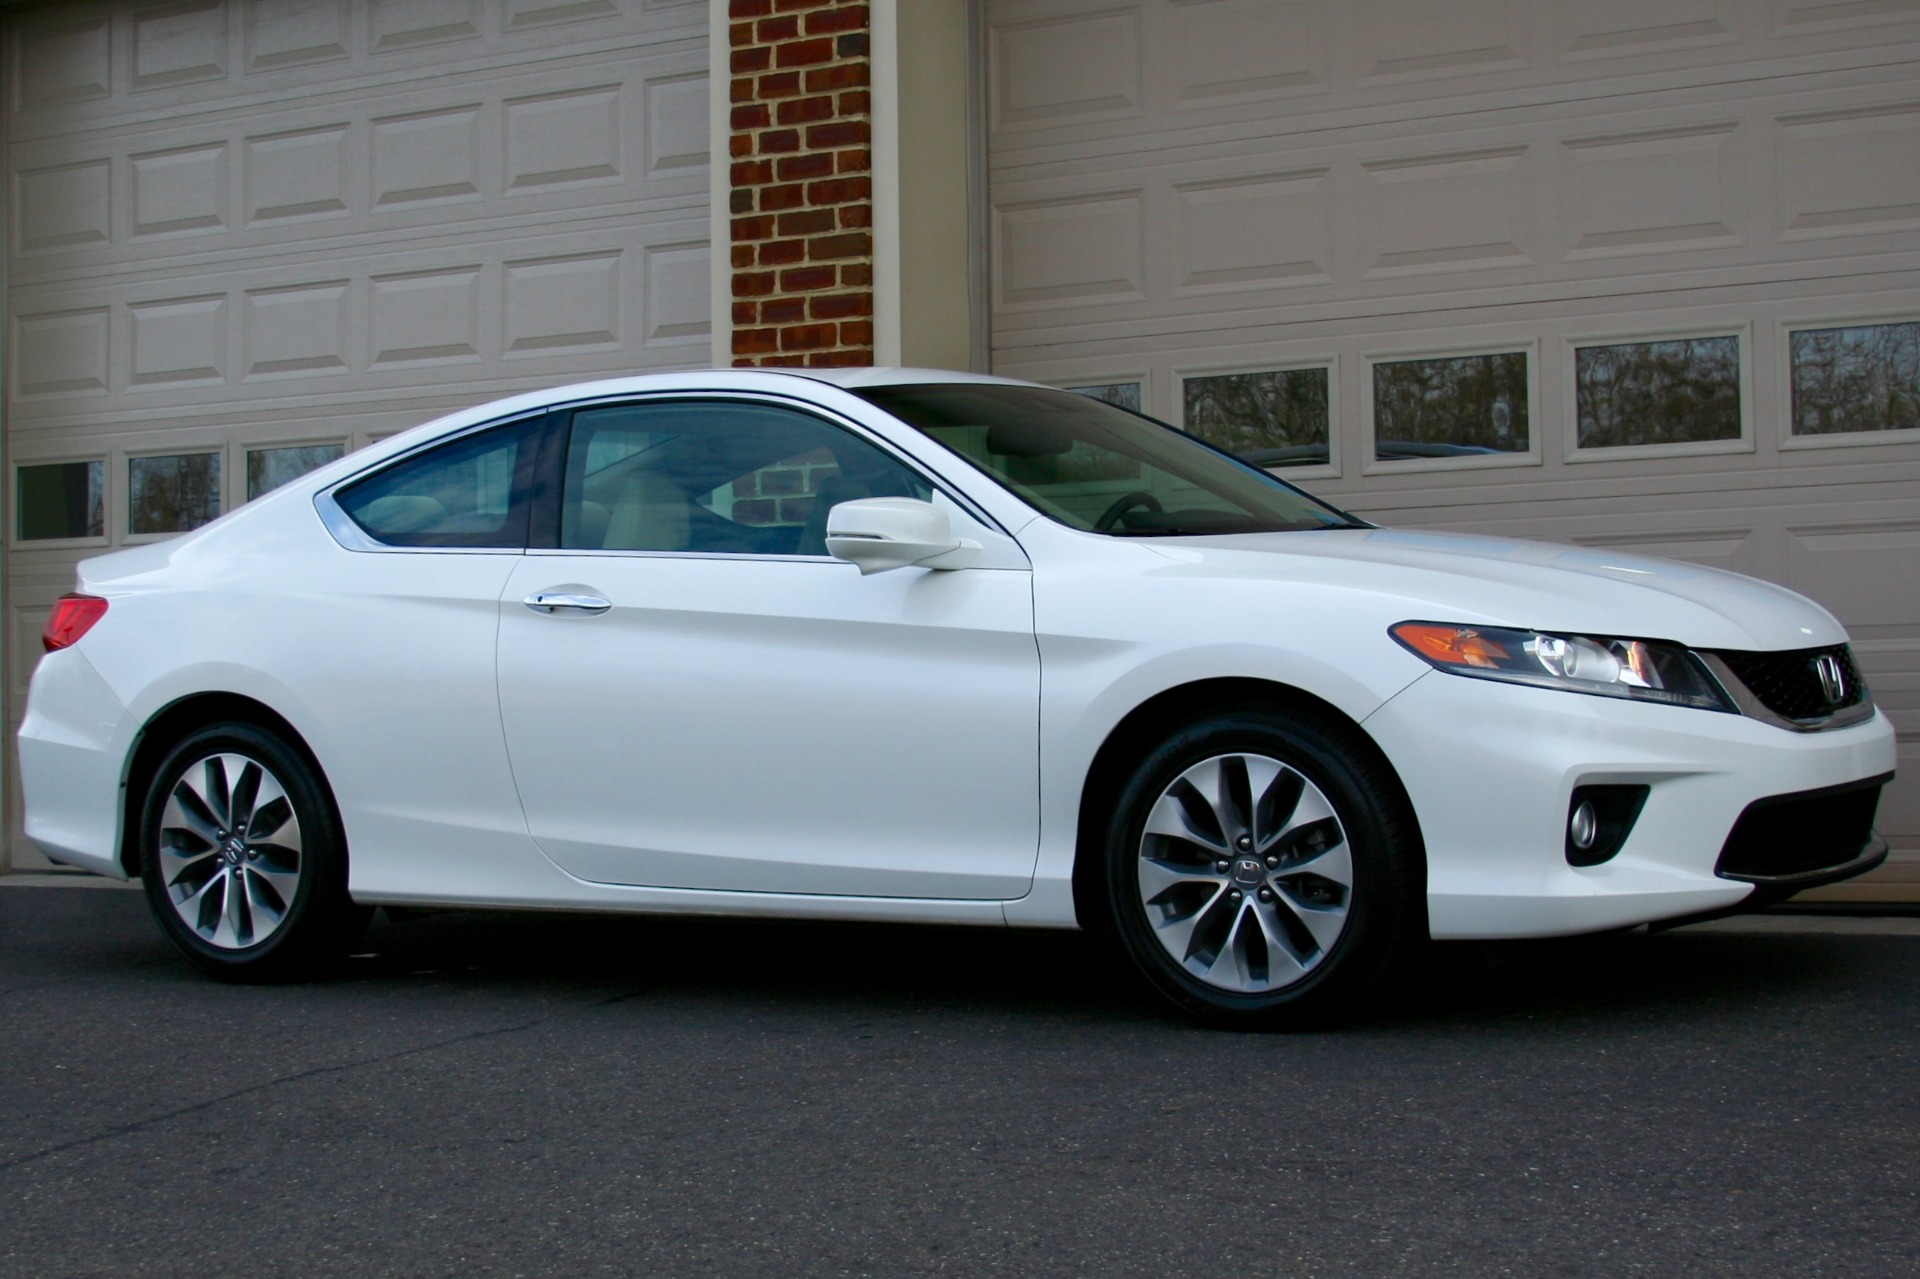 Honda Dealers Nj >> 2015 Honda Accord EX-L w/Navi Stock # 004233 for sale near Edgewater Park, NJ | NJ Honda Dealer